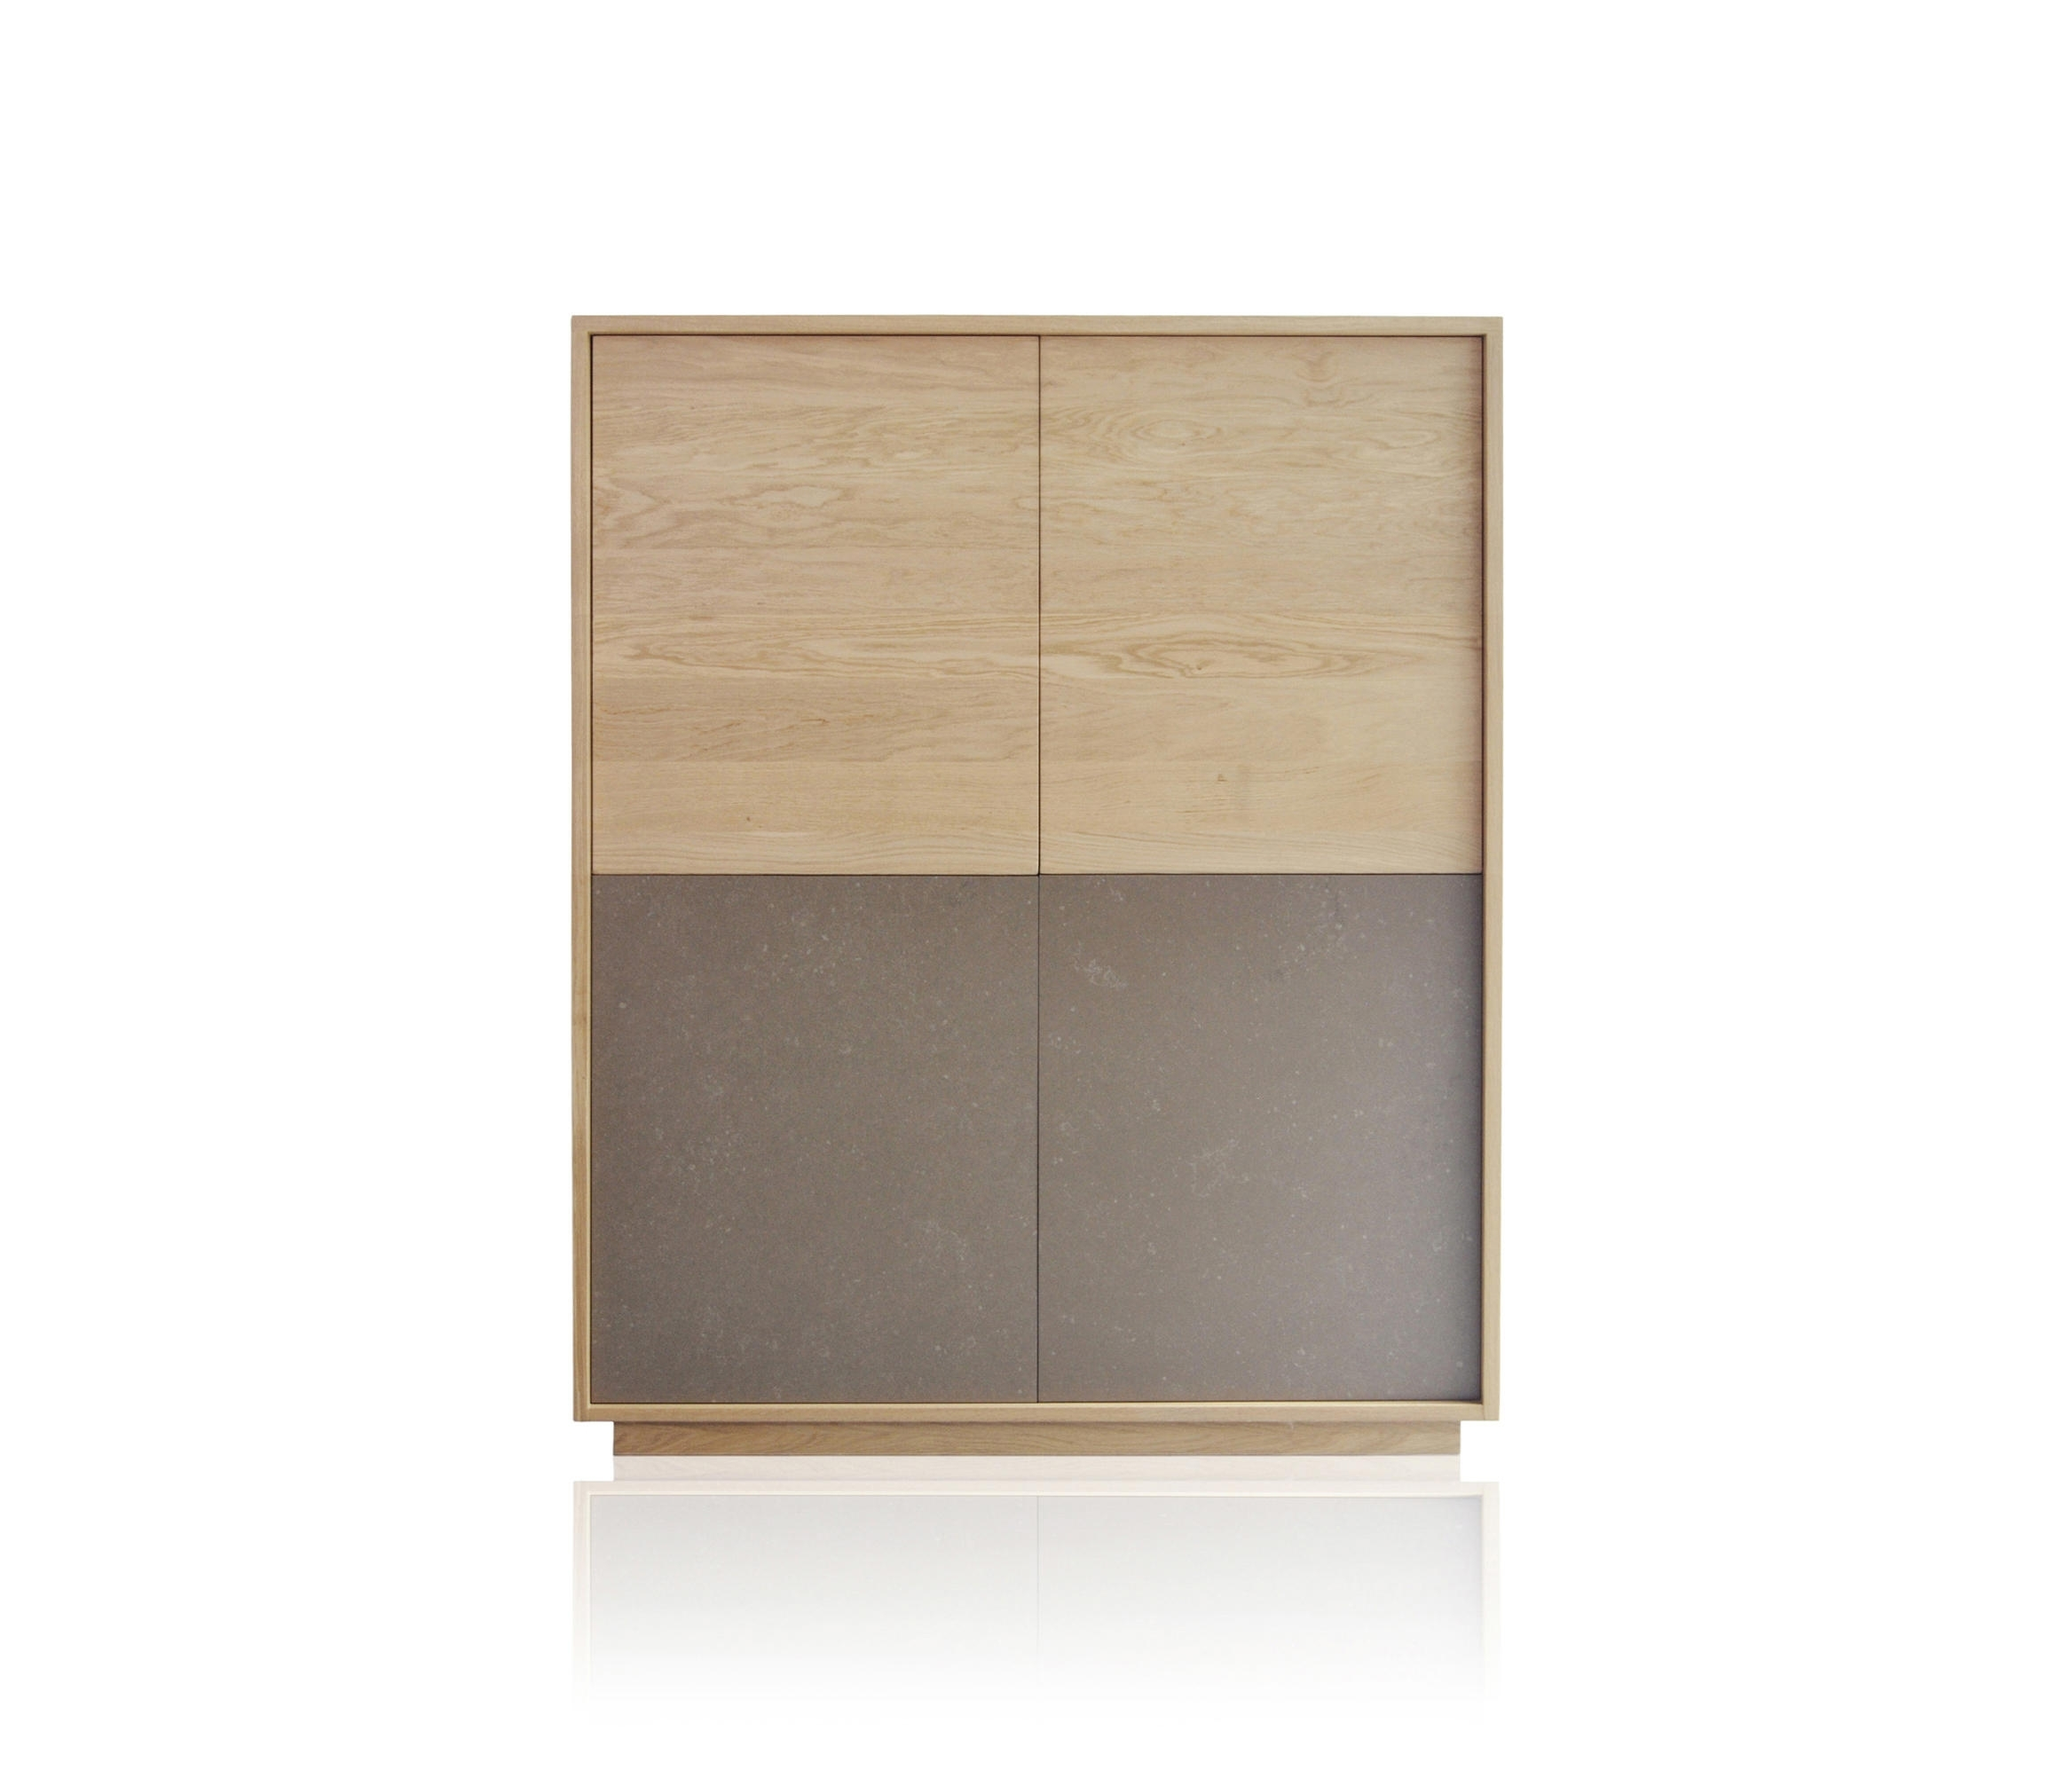 Basic 4 Door Module - Sideboards From Expormim | Architonic in Square Brass 4 Door Sideboards (Image 3 of 30)